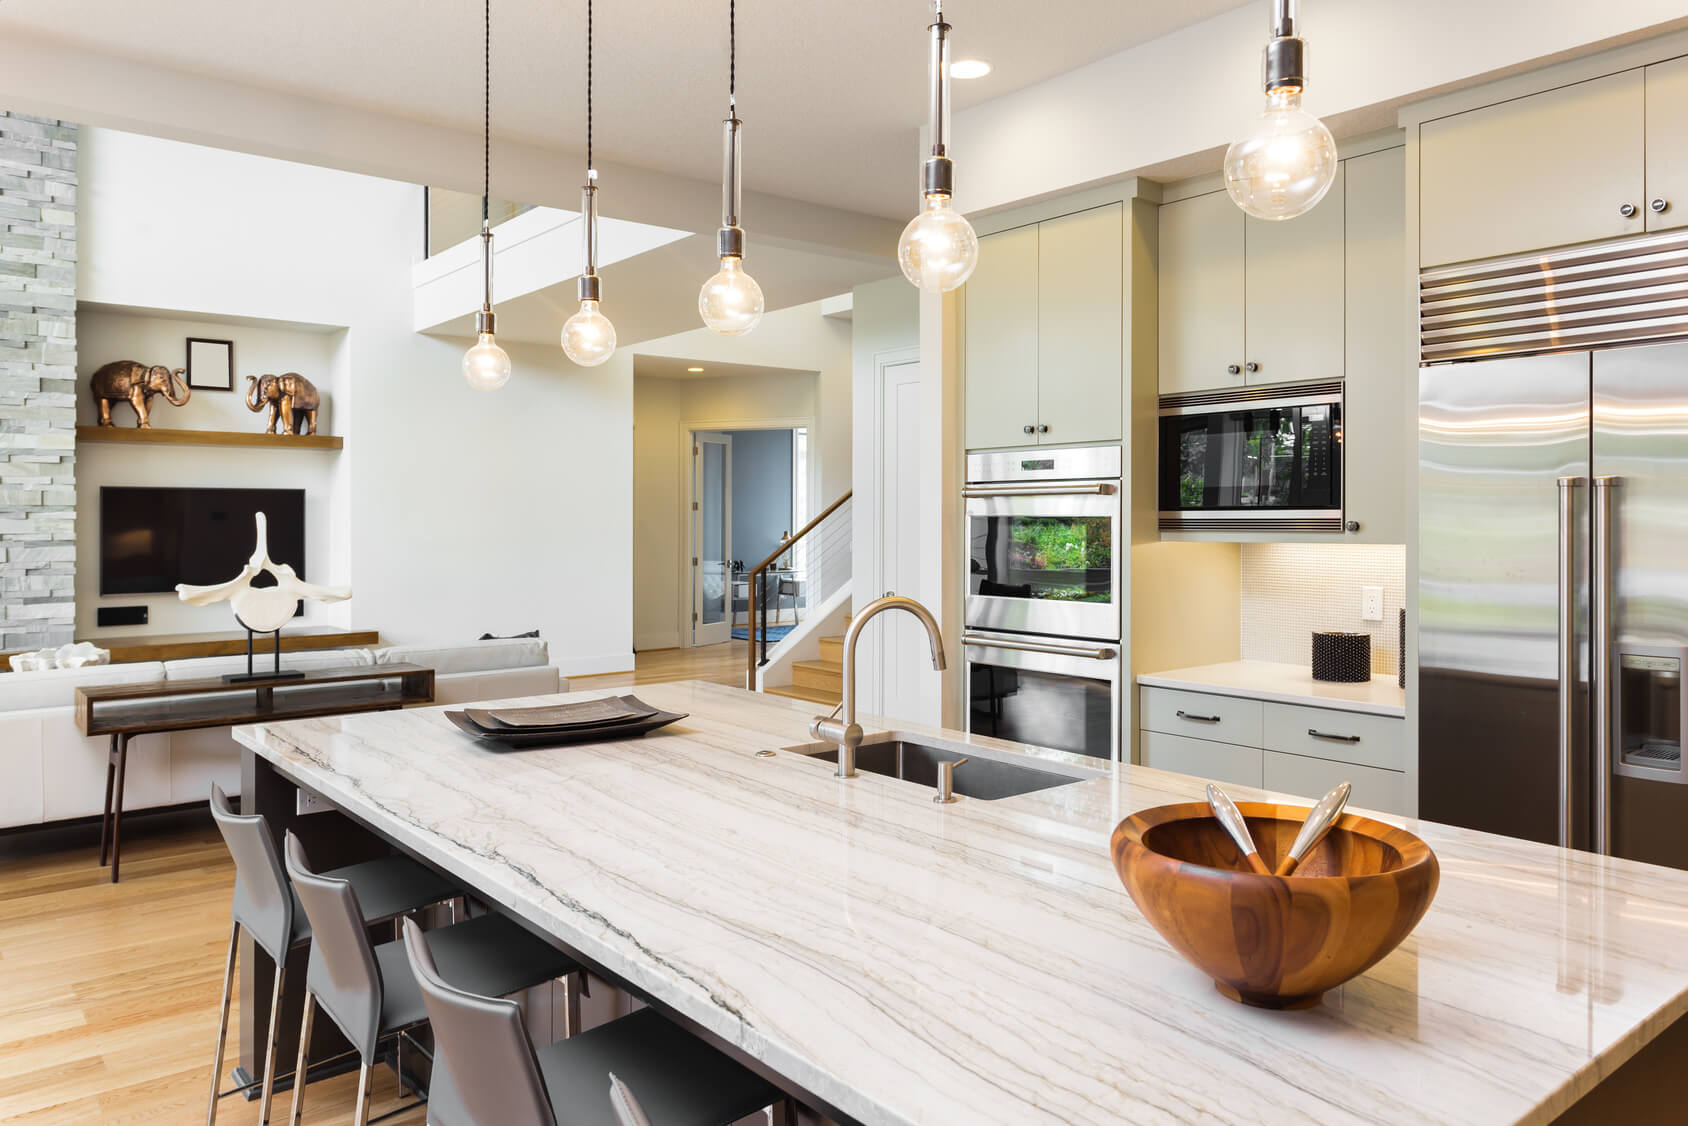 Home Remodeling And Construction | The Woodlands And North Houston ...